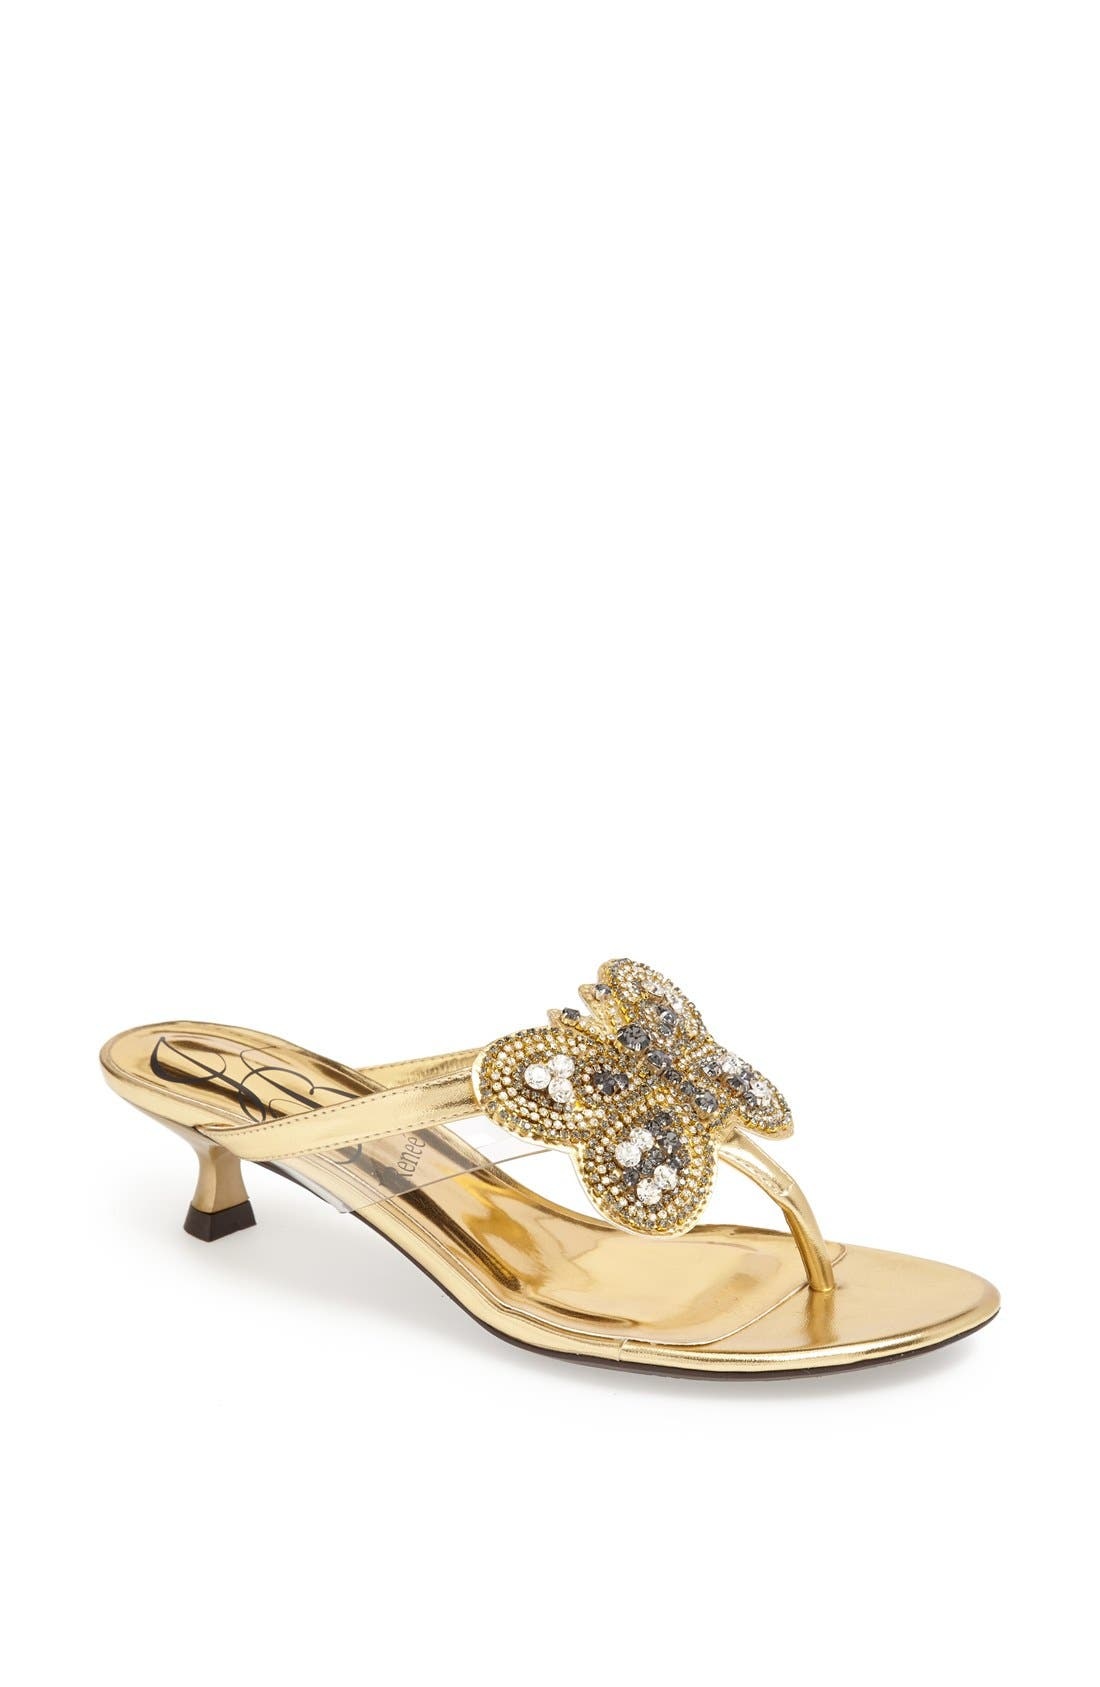 Alternate Image 1 Selected - J. Reneé 'Imbrie' Embellished Thong Sandal